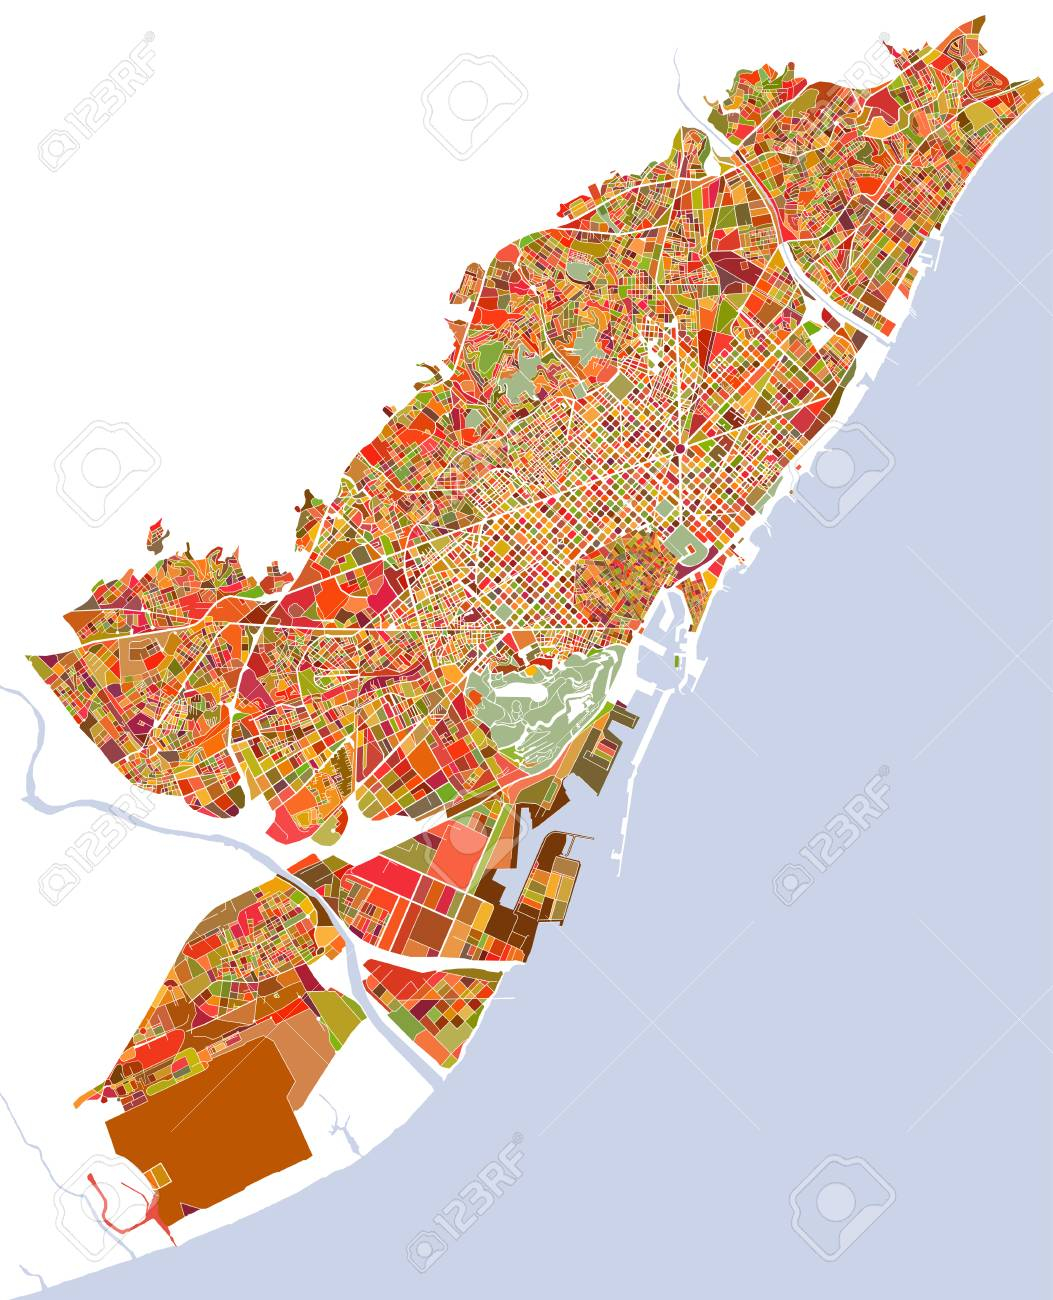 Barcelona In Spain Map.Illustration Map Of The City Of Barcelona Spain Catalonia Stock